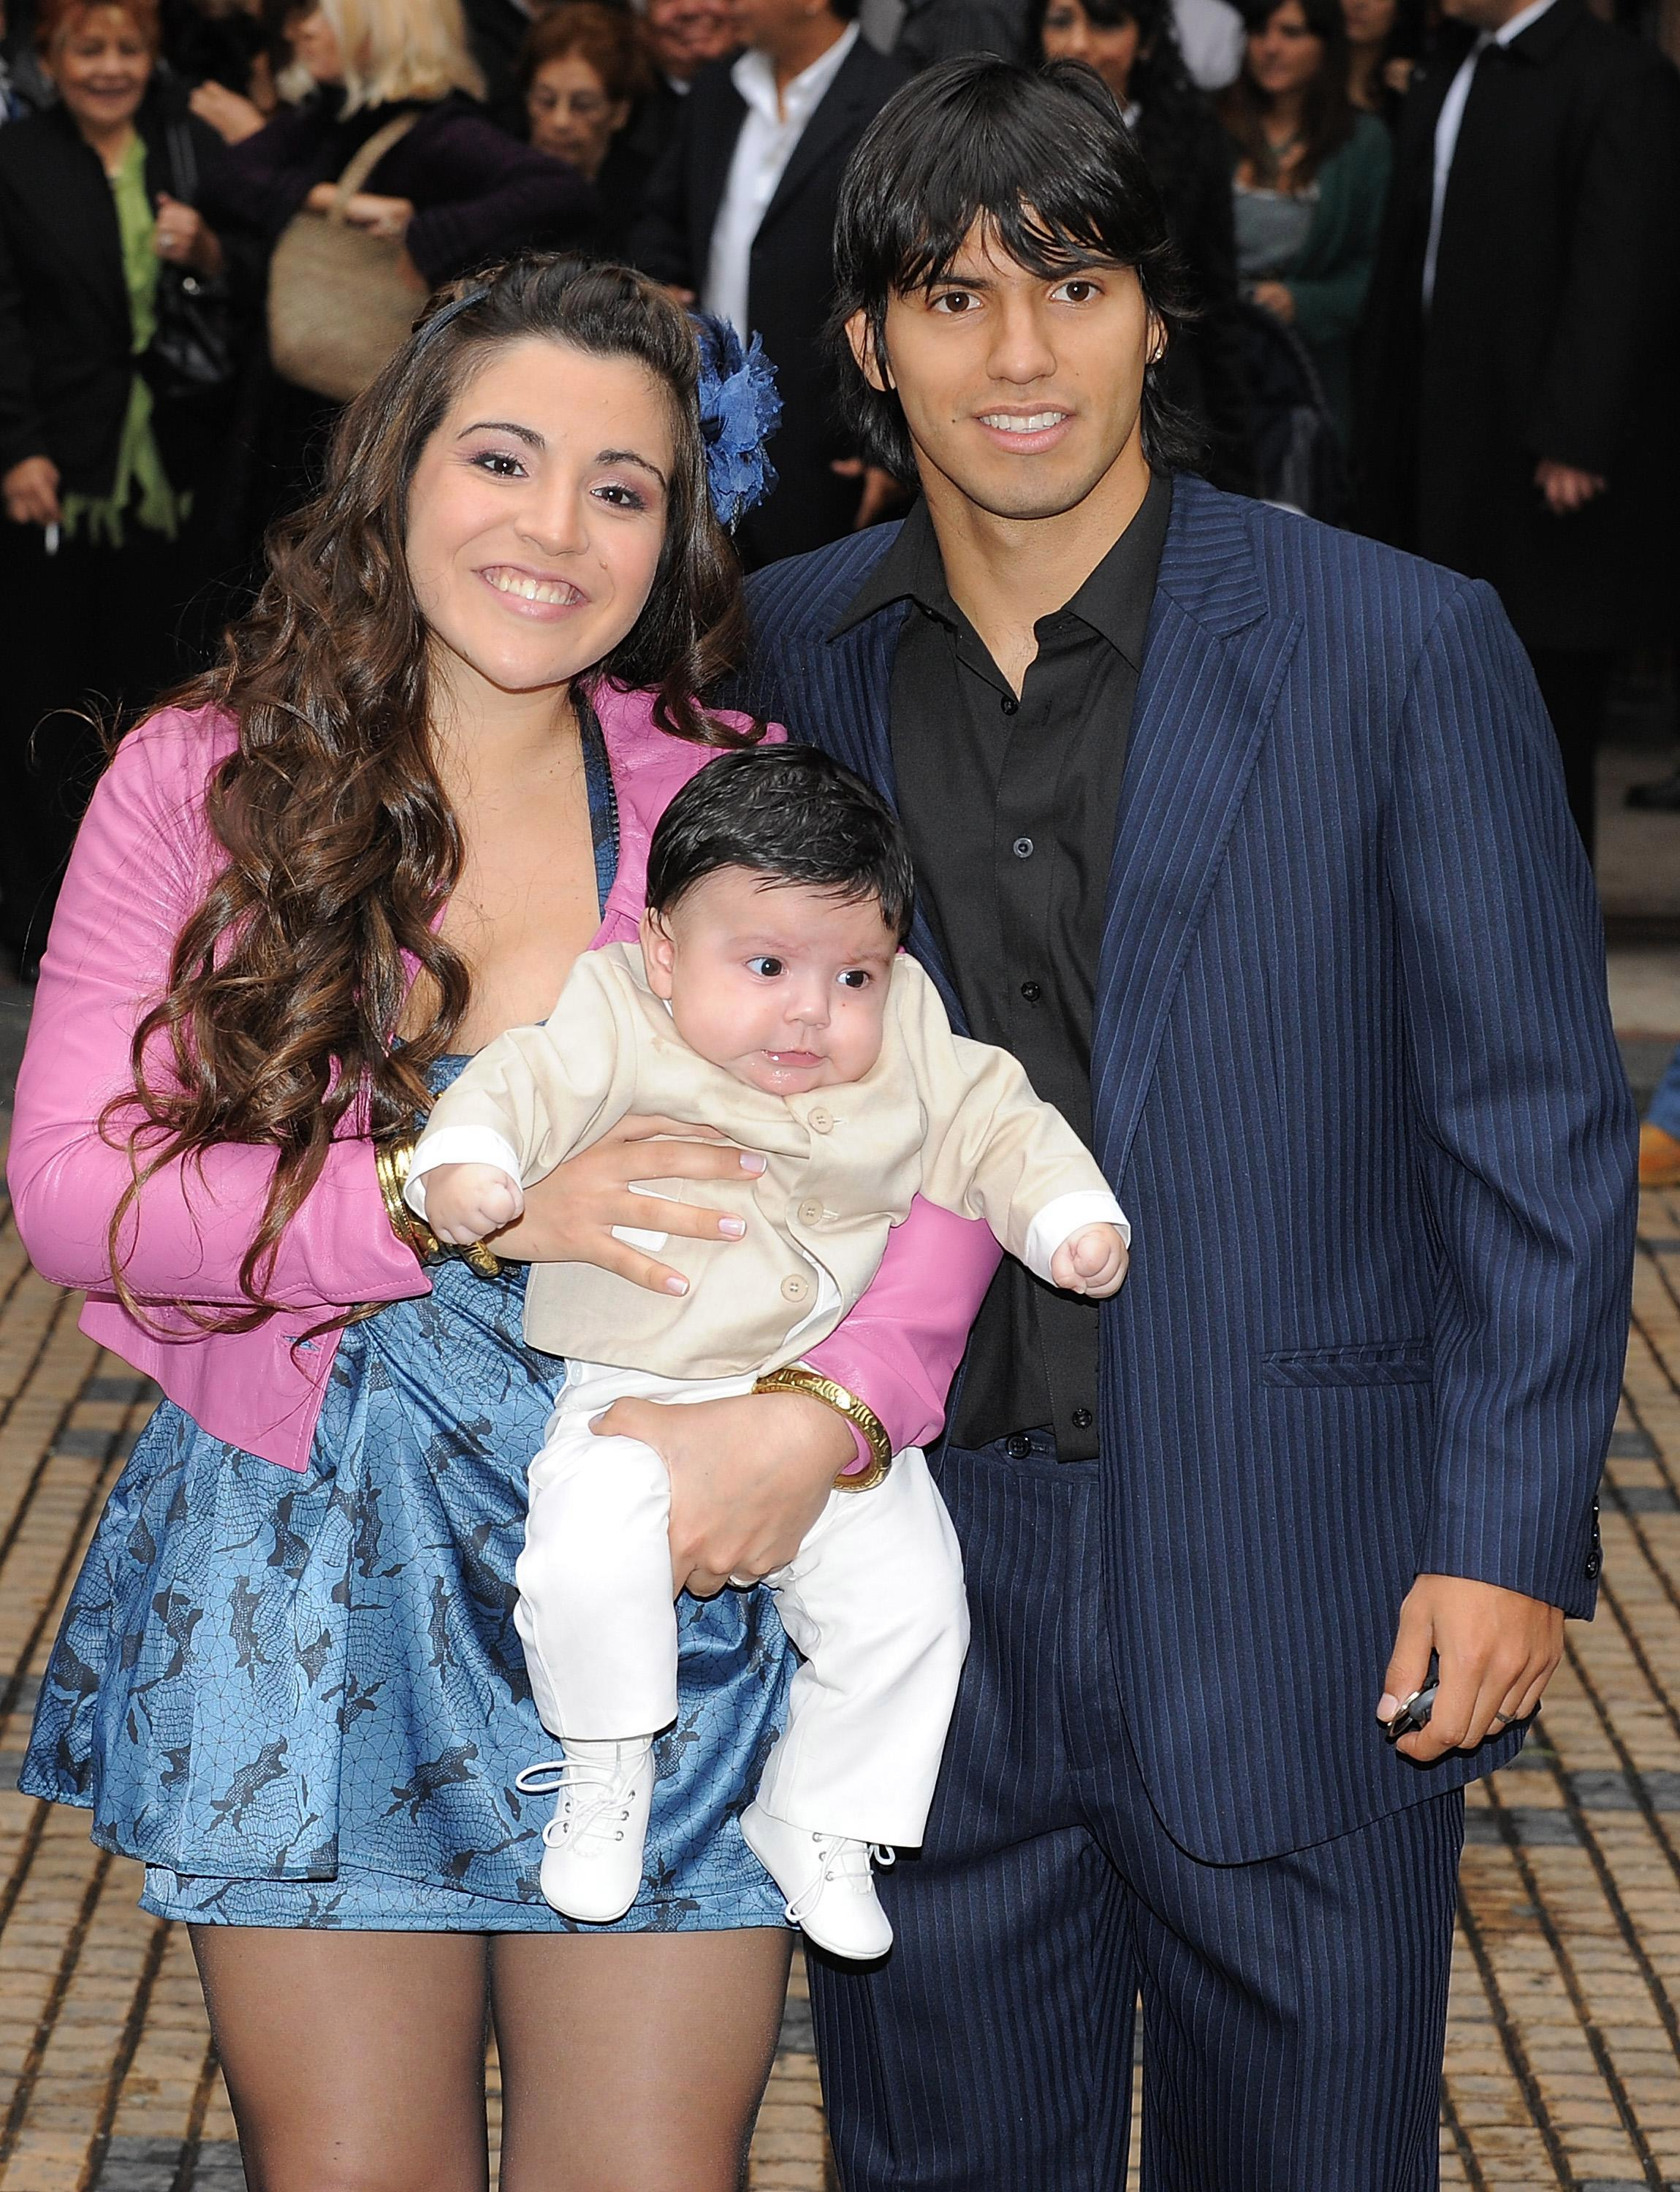 Aguero has a child, Benjamin, with his first wife Giannina